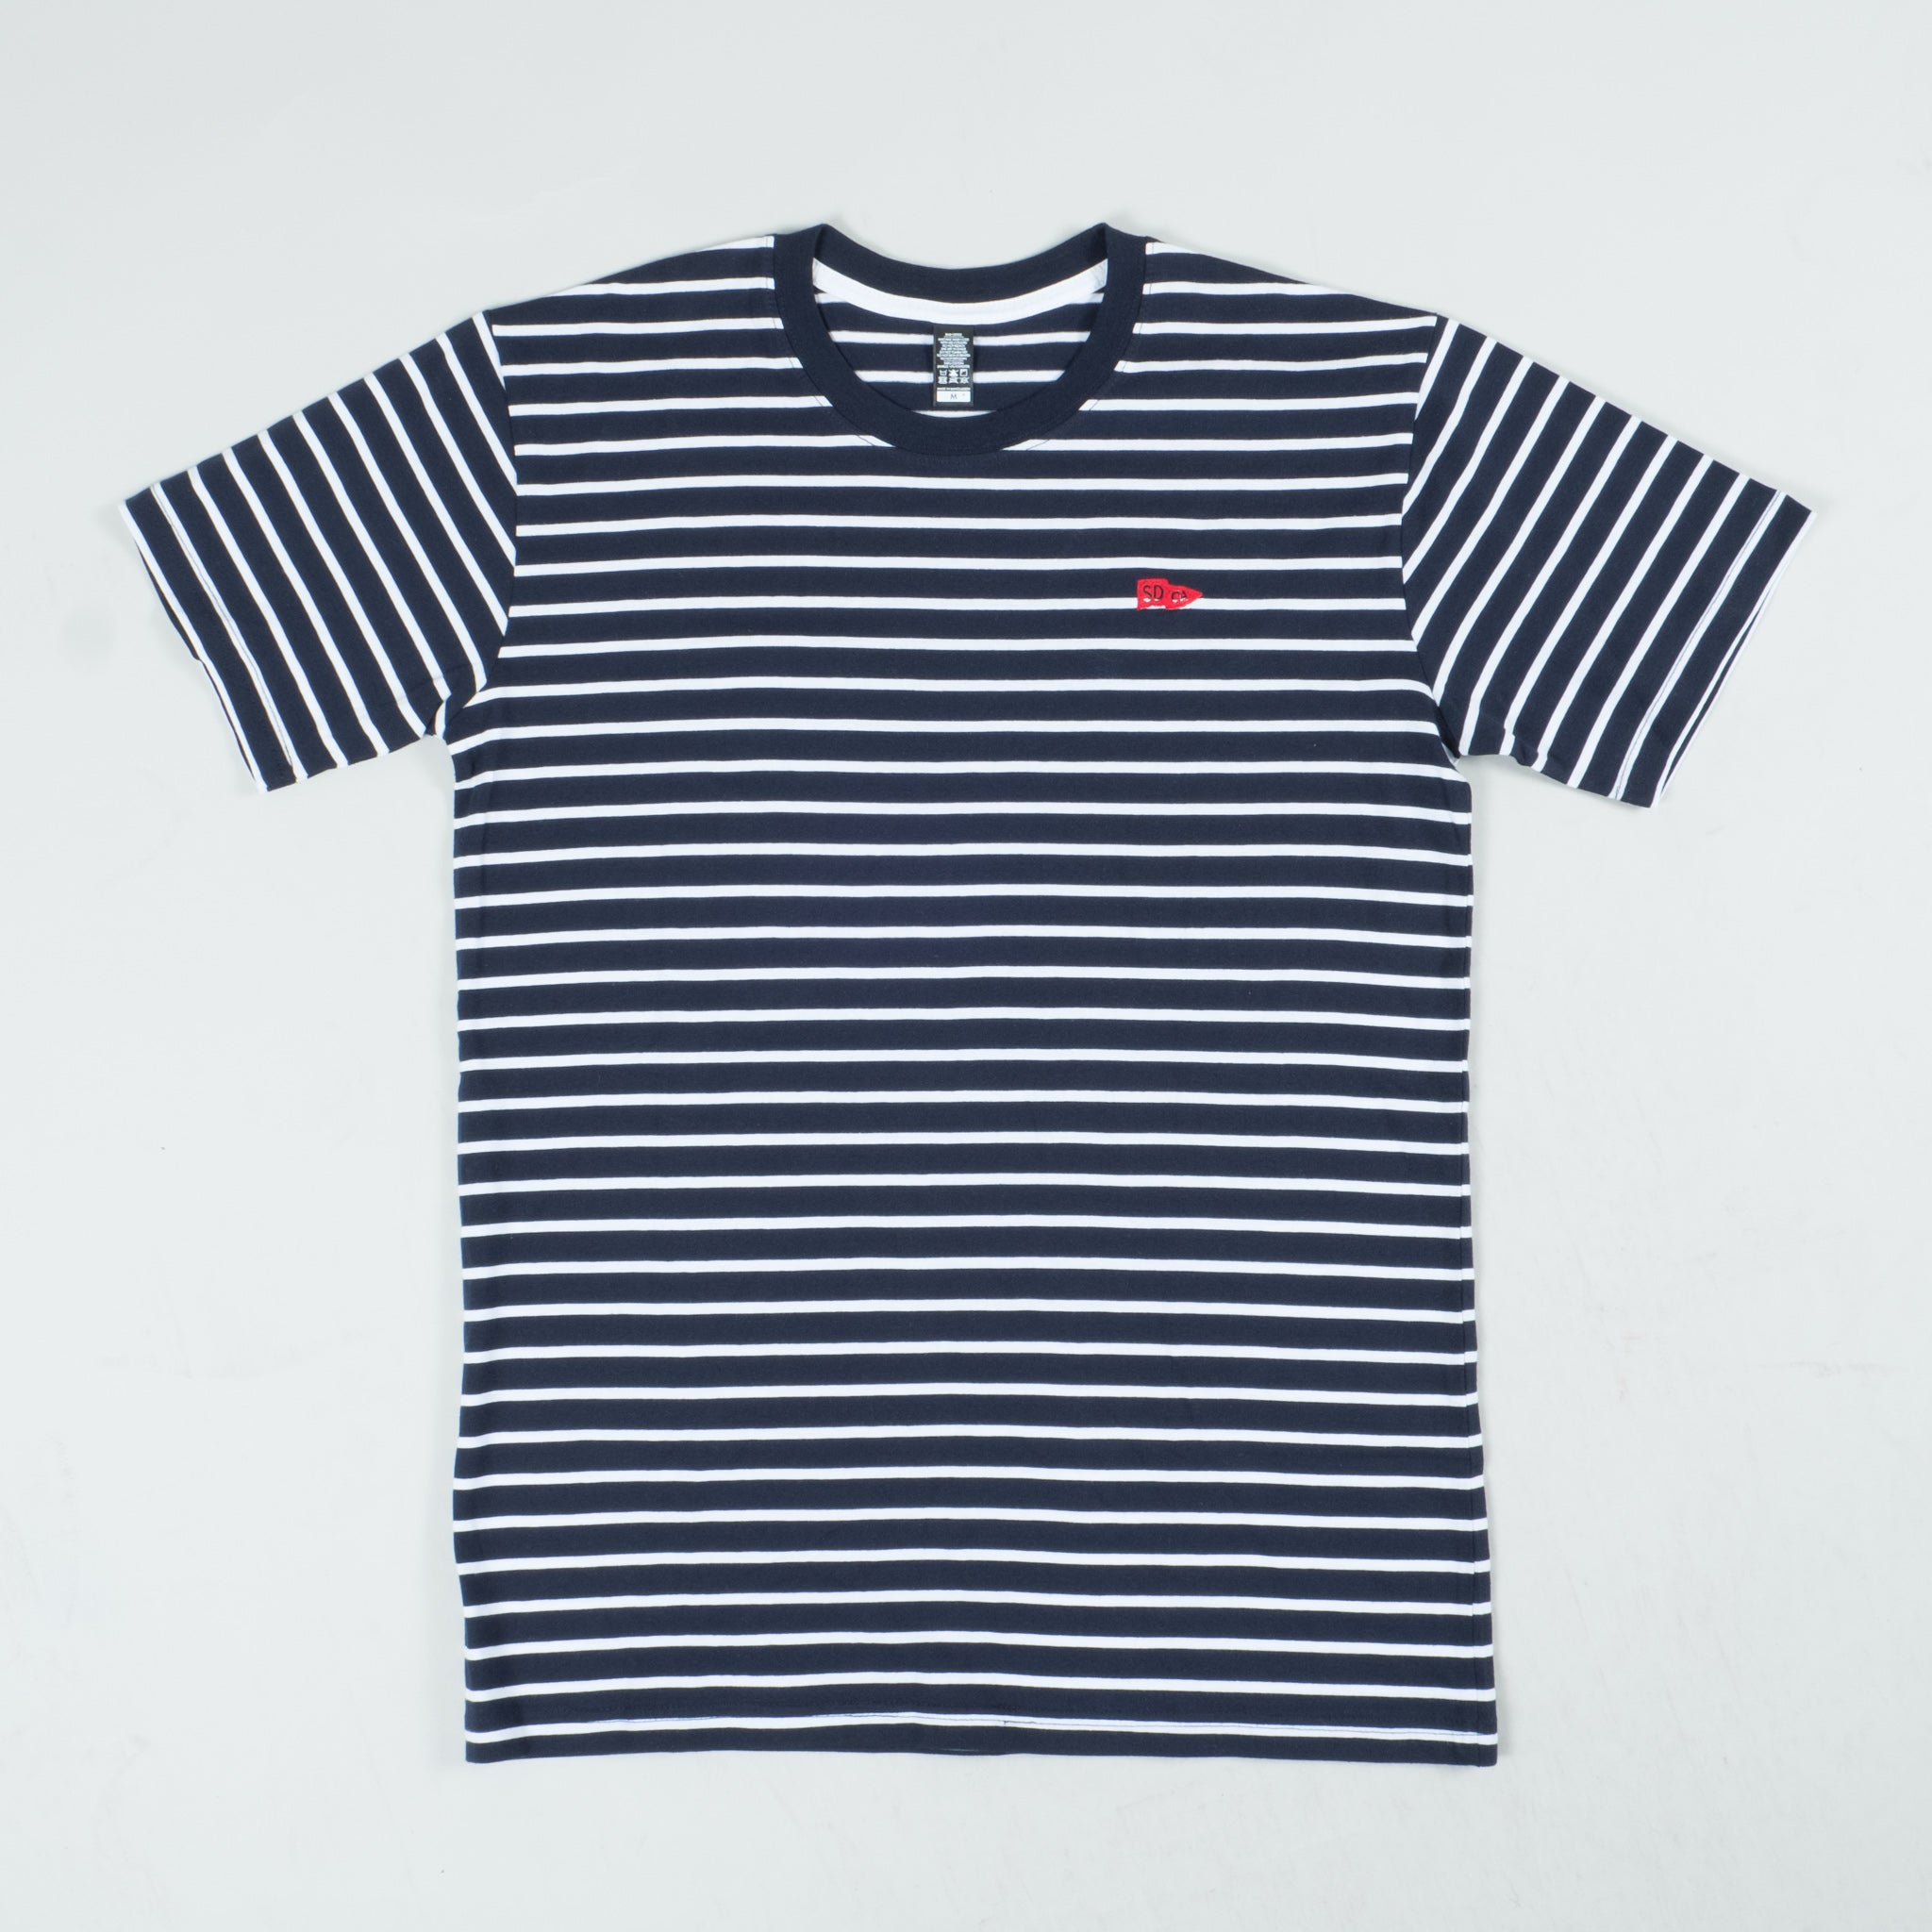 San Diego Collection / Navy and White Stripe Tee